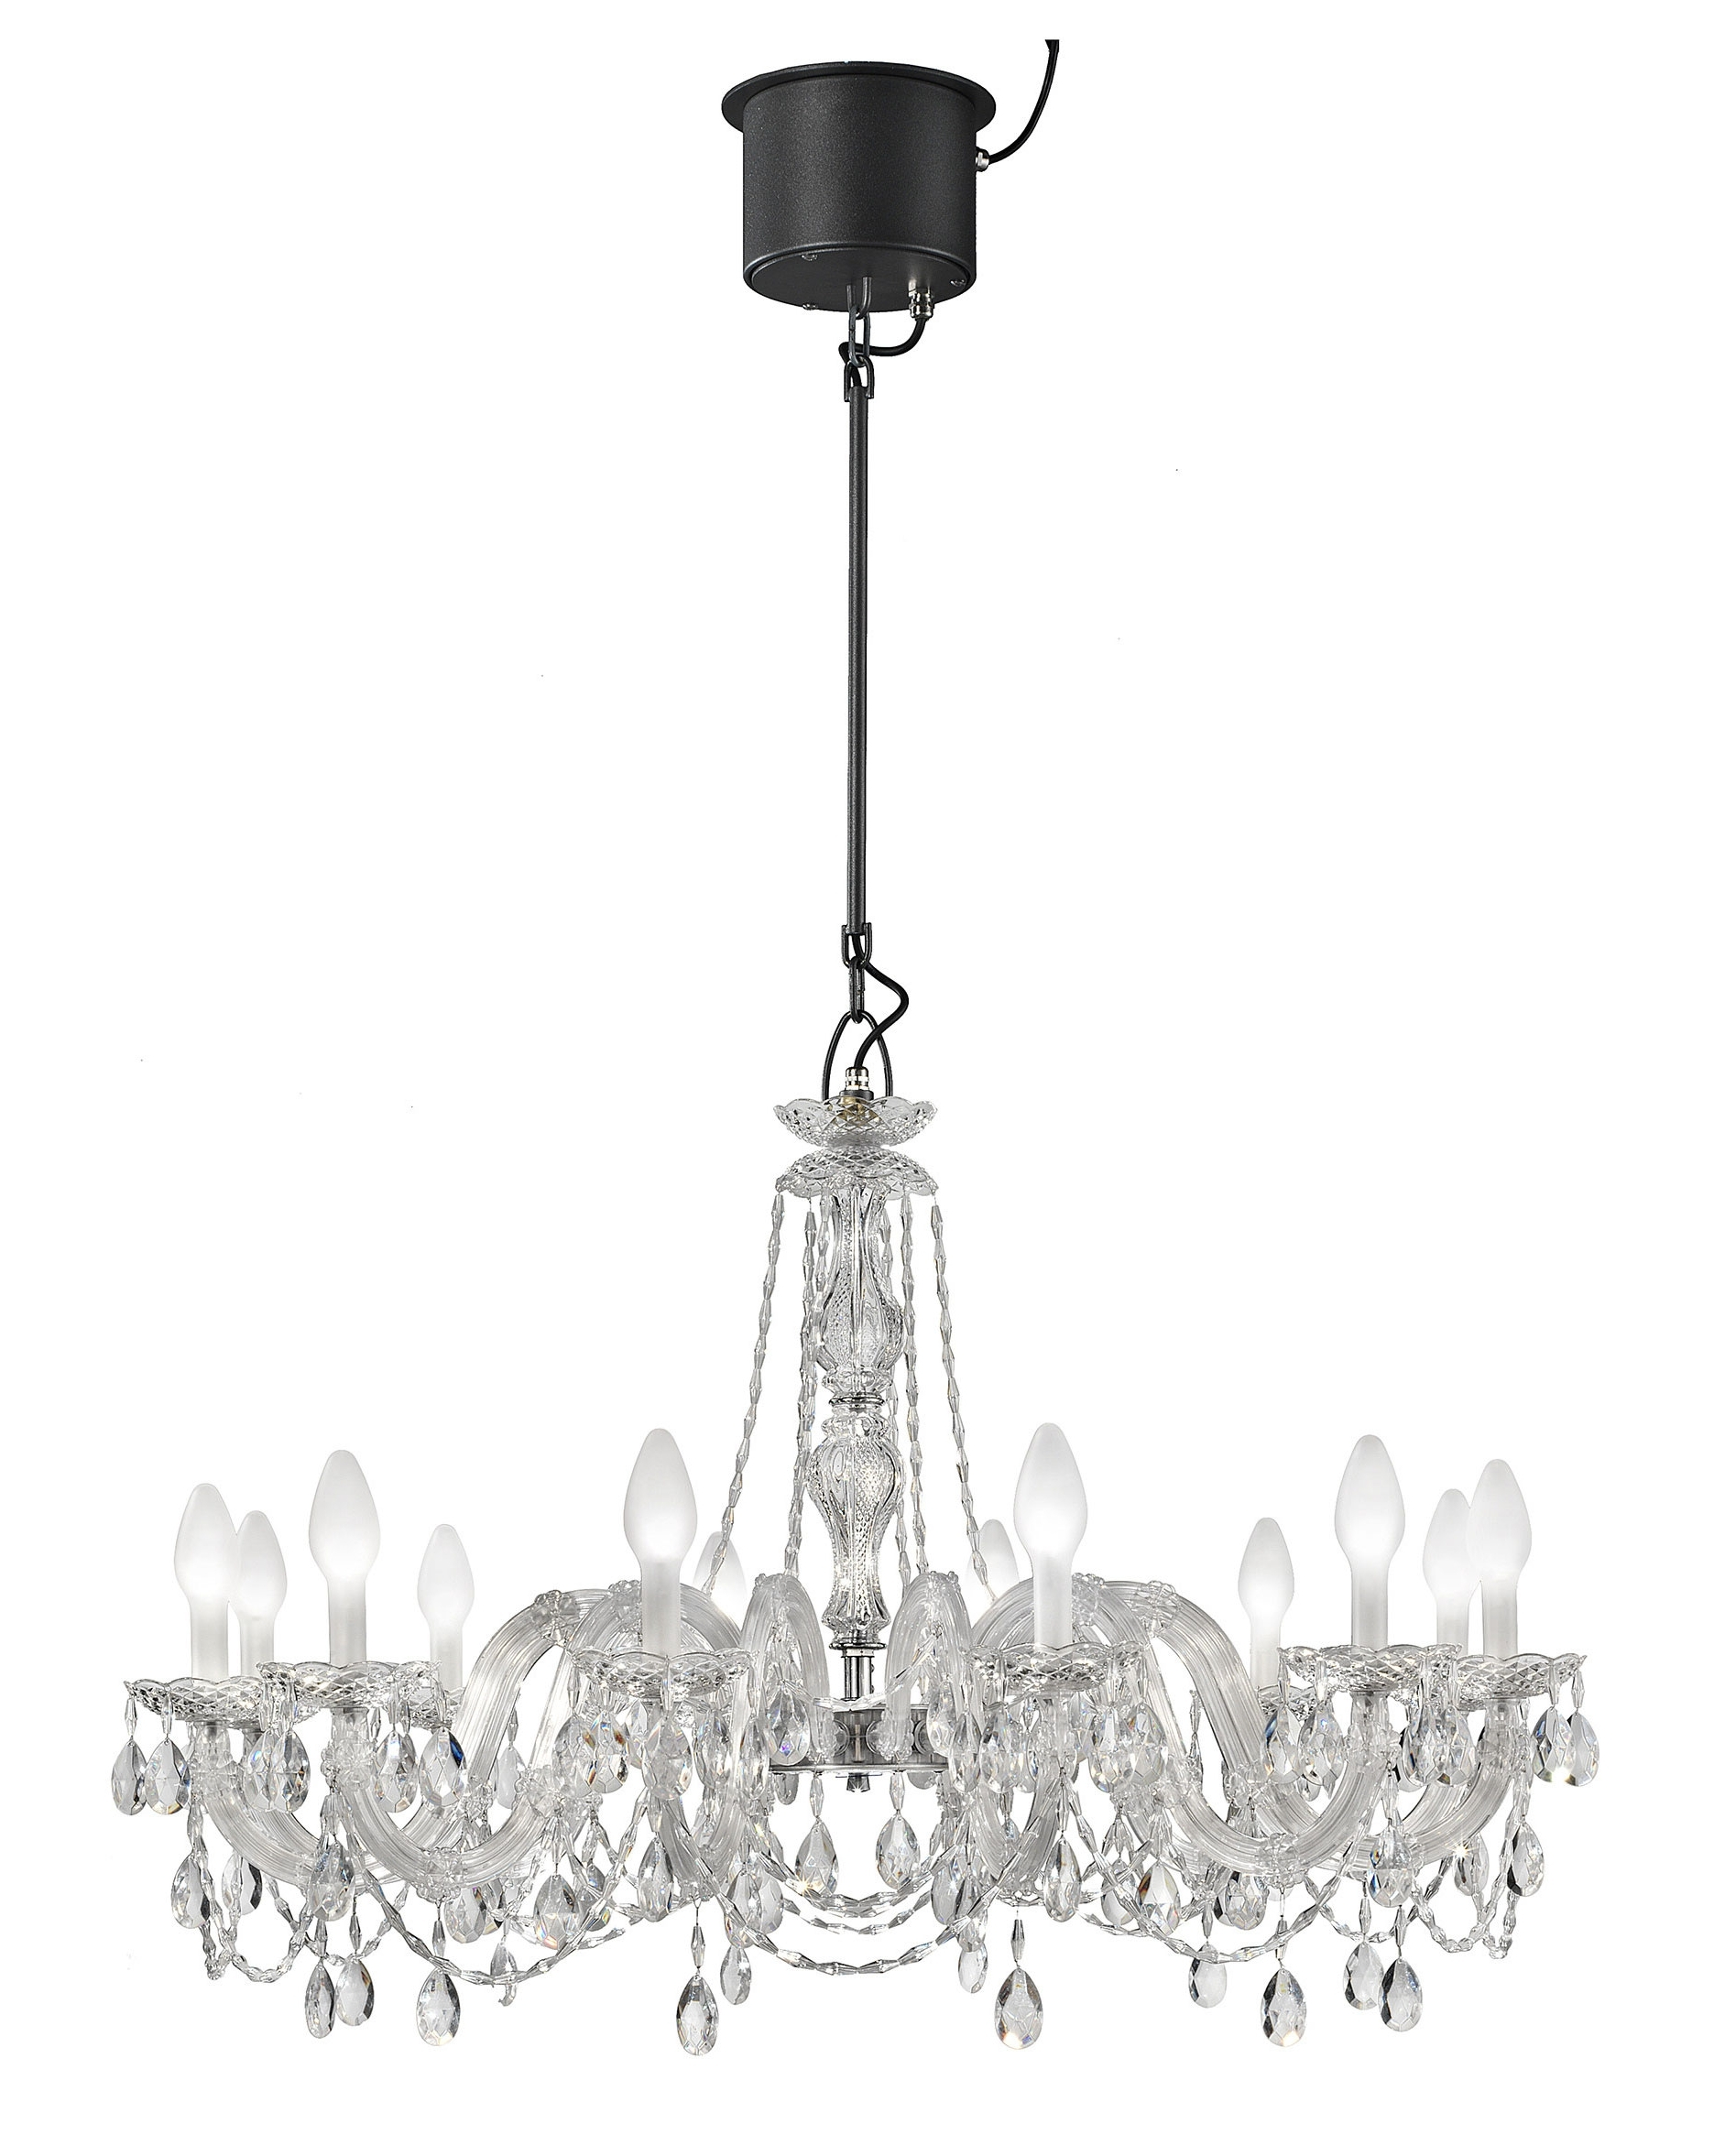 Most Recent Light Fitting Chandeliers Within Modern Light Fixtures & Luxury Lighting (View 8 of 20)